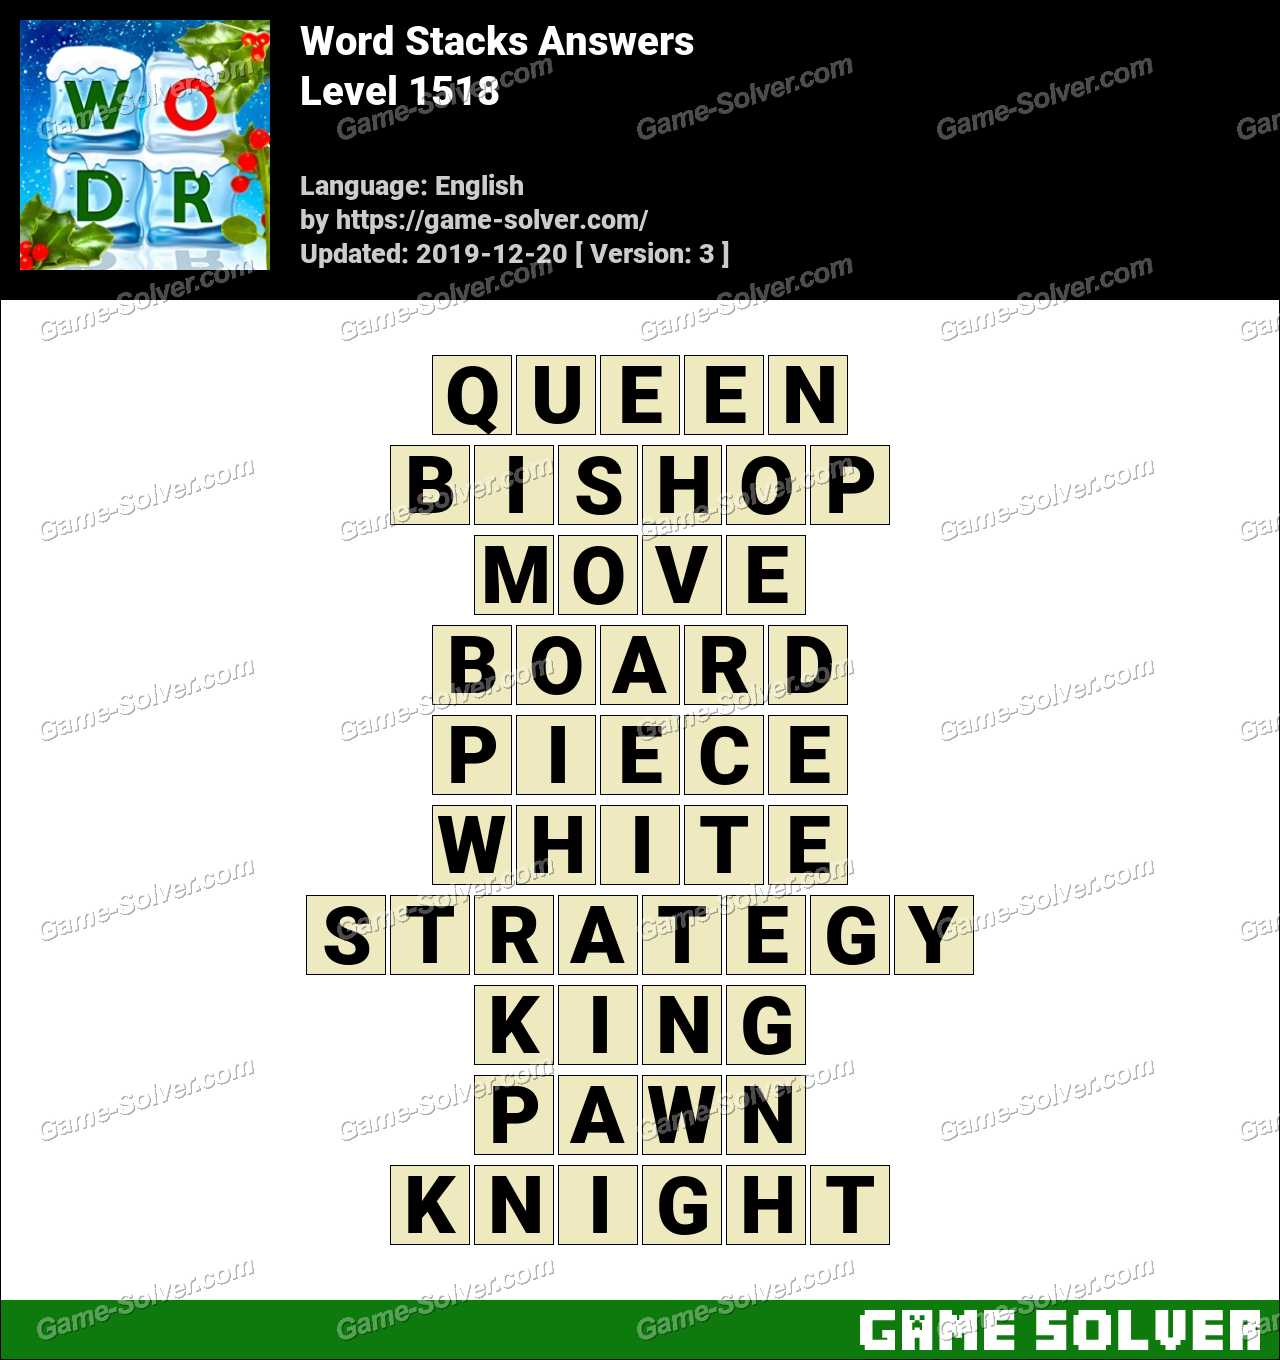 Word Stacks Level 1518 Answers